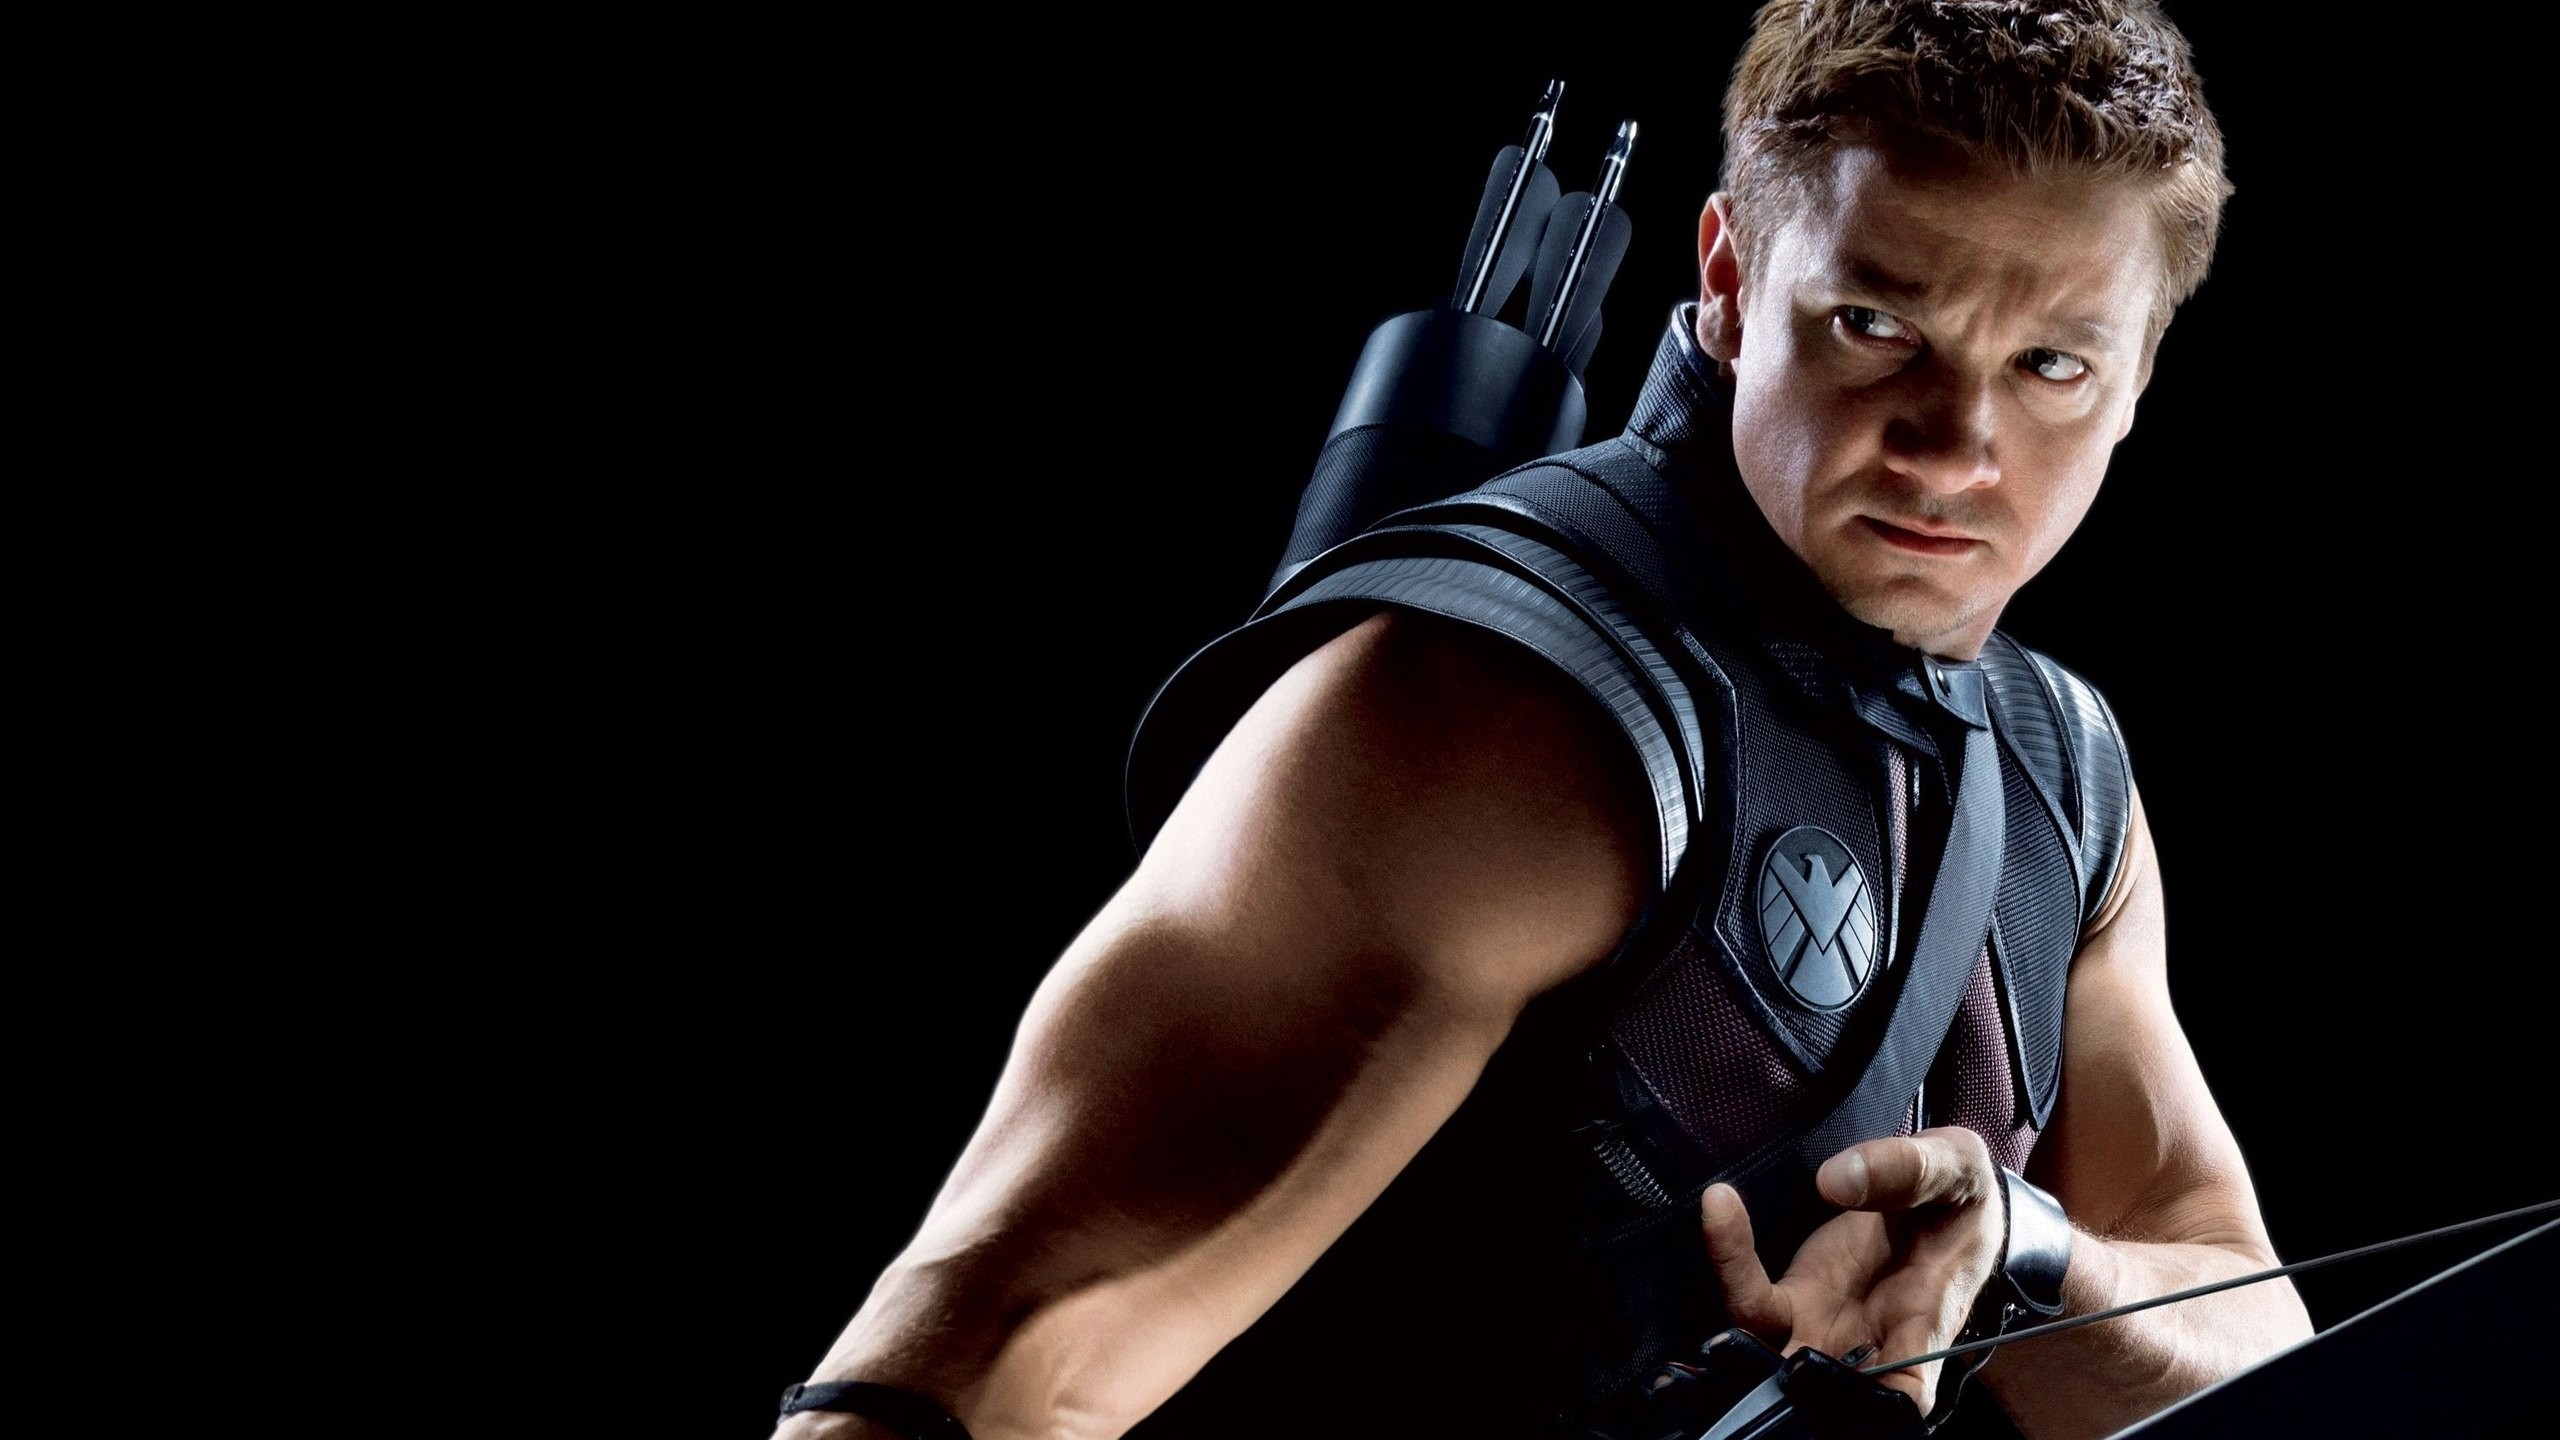 hawkeye wallpapers page - photo #25